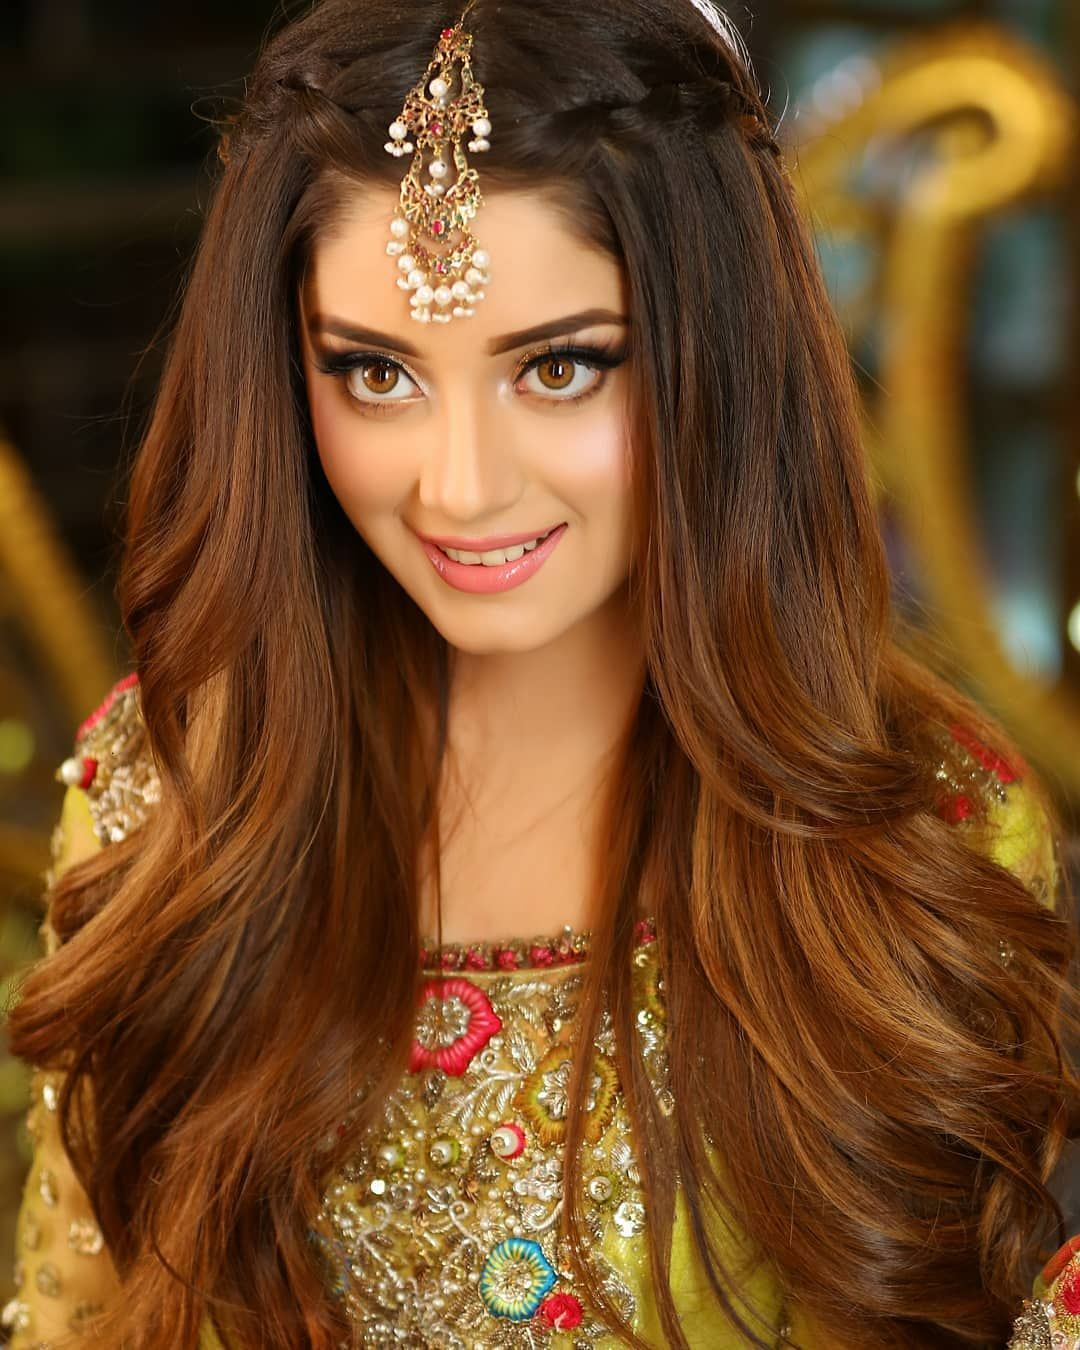 Image May Contain 1 Person Closeup Engagement Hairstyles Hair Styles Indian Wedding Hairstyles